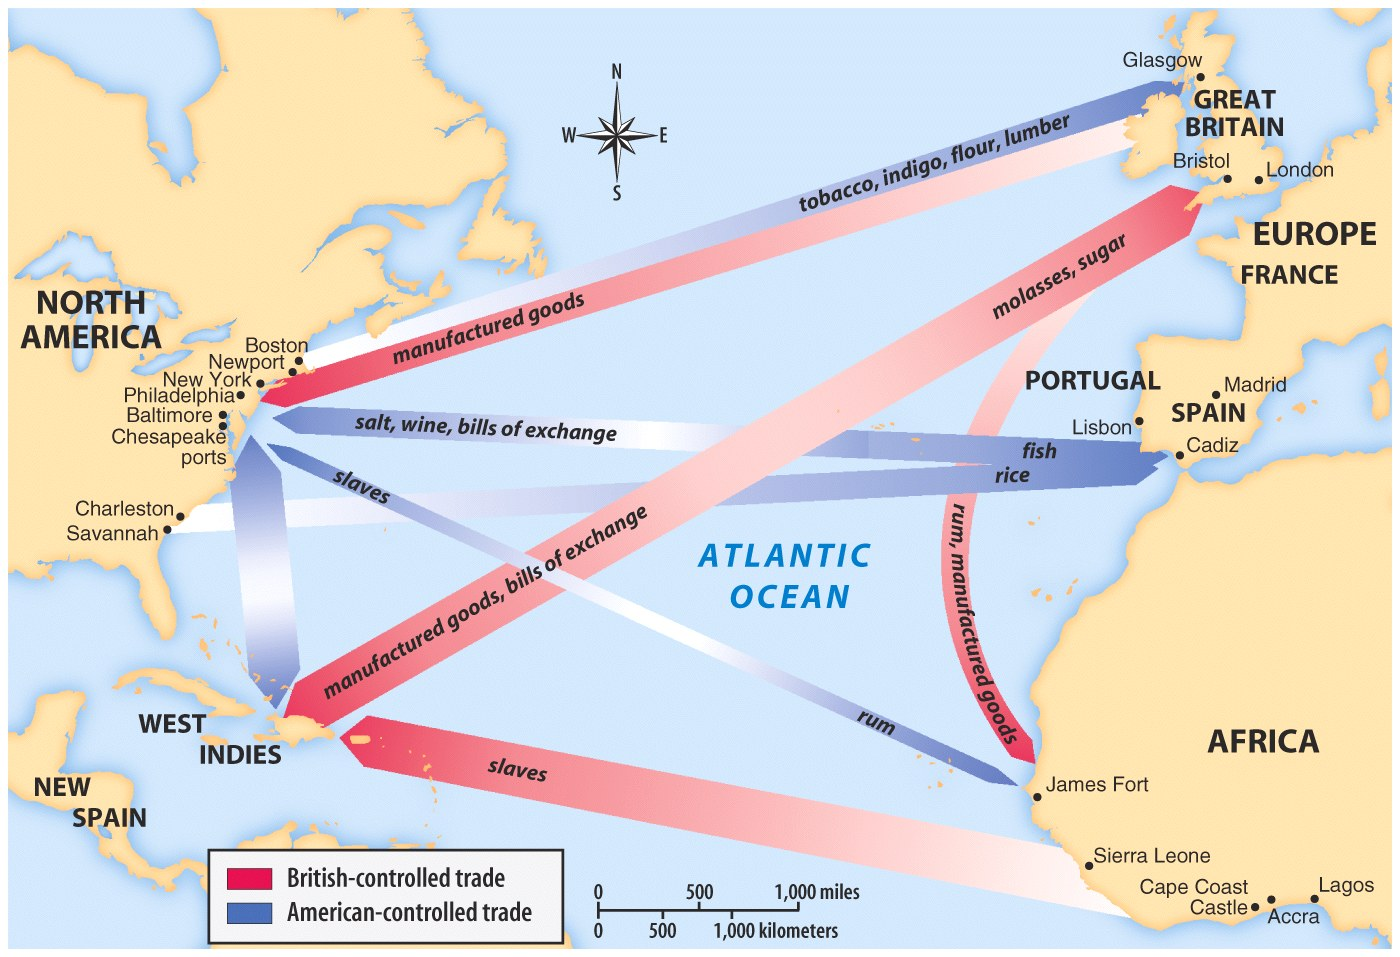 columbian exchange diagram wiring for warn 9000 winch 8th grade monday friday 02 27 03 2012 fulfill the